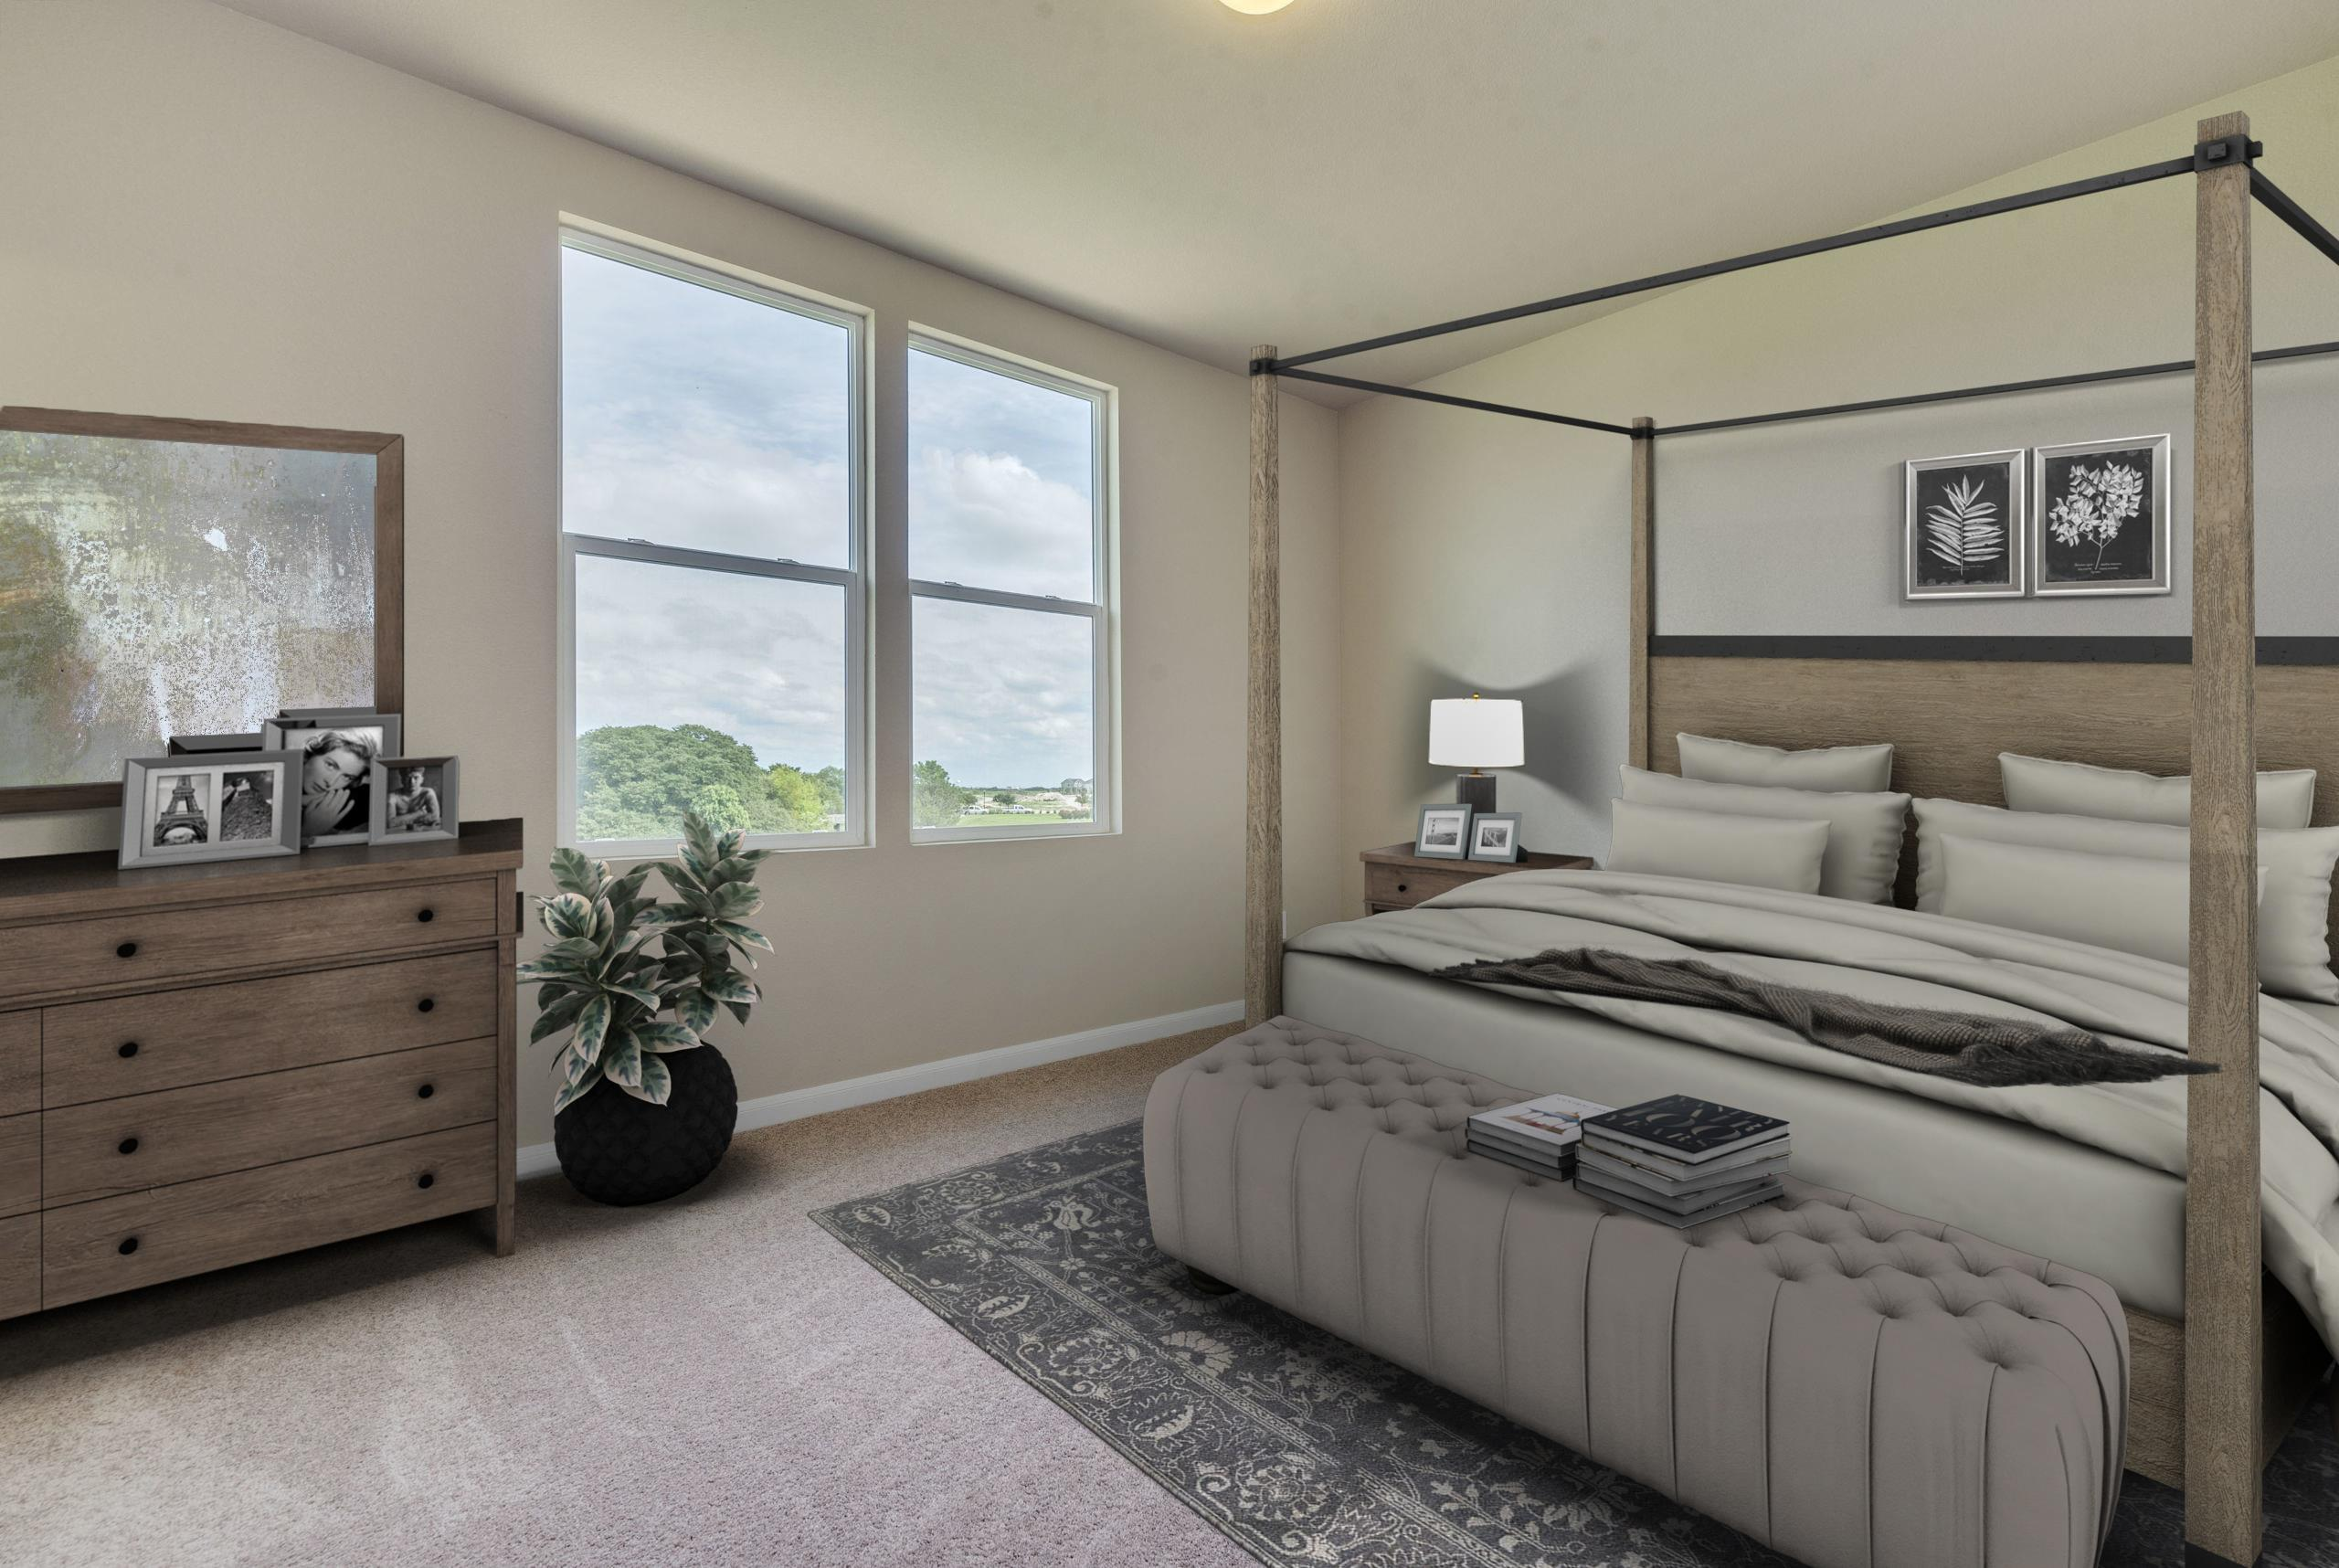 Bedroom featured in The Mesquite By Bigelow Homes in Austin, TX